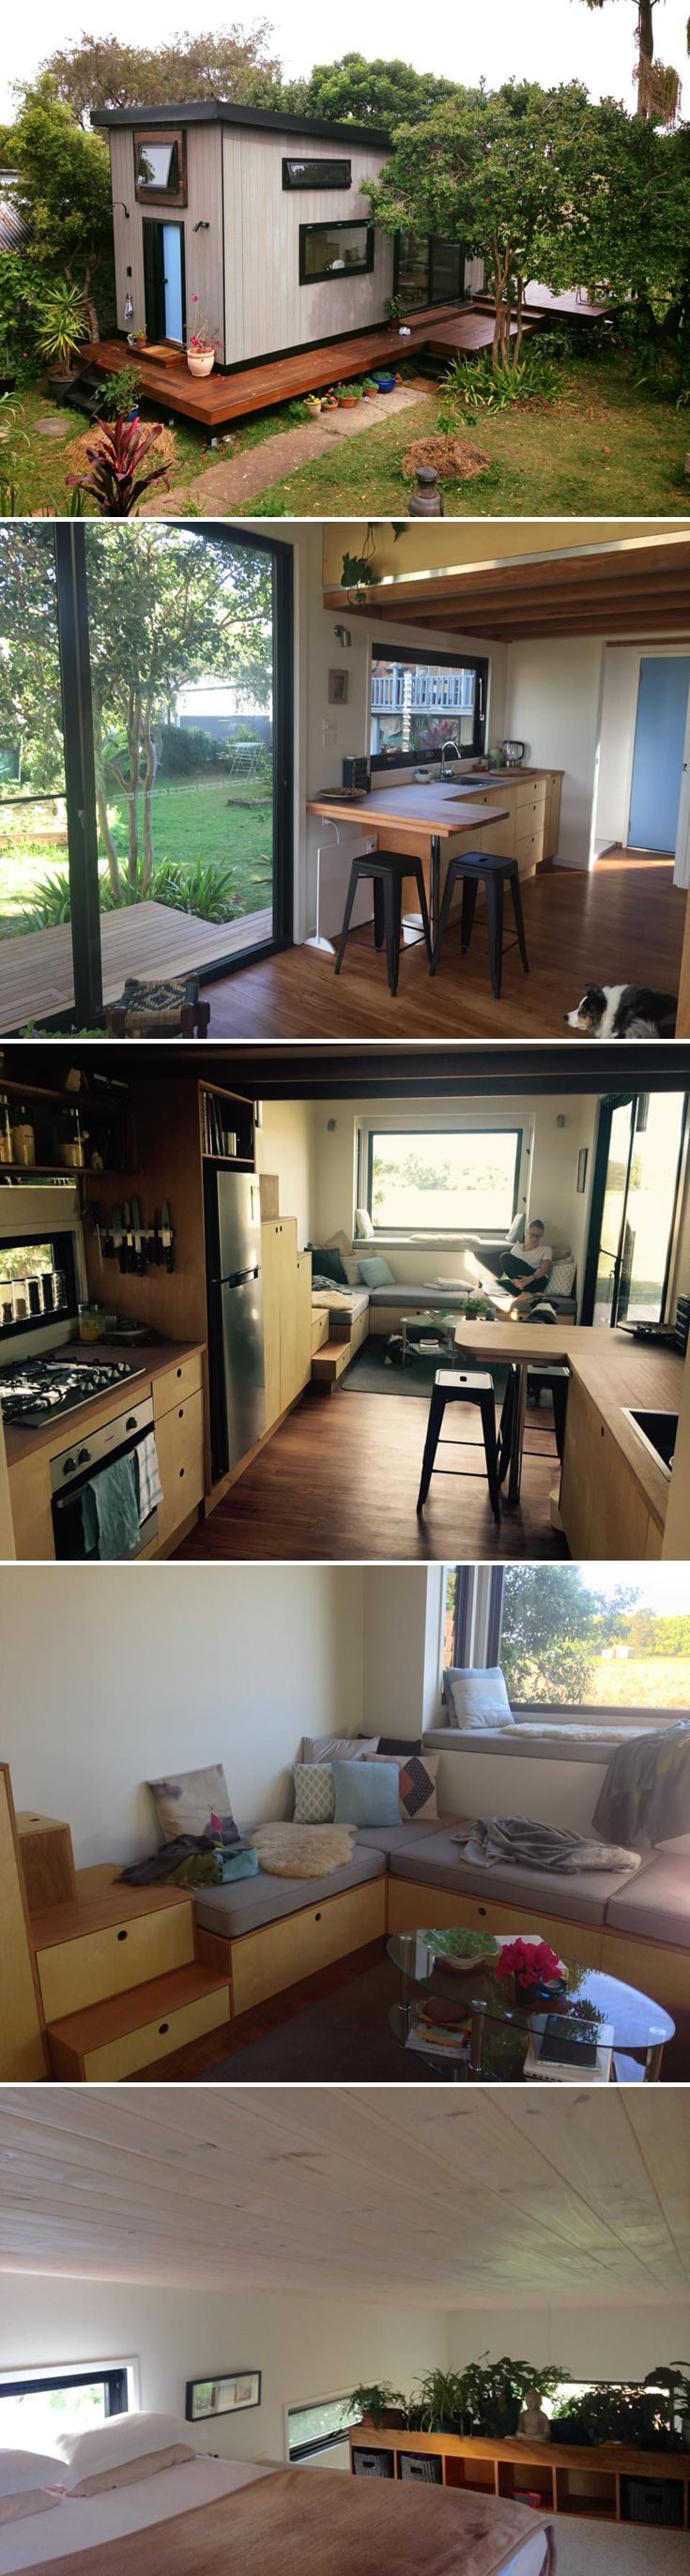 best tiny house ideas images on pinterest sims house small